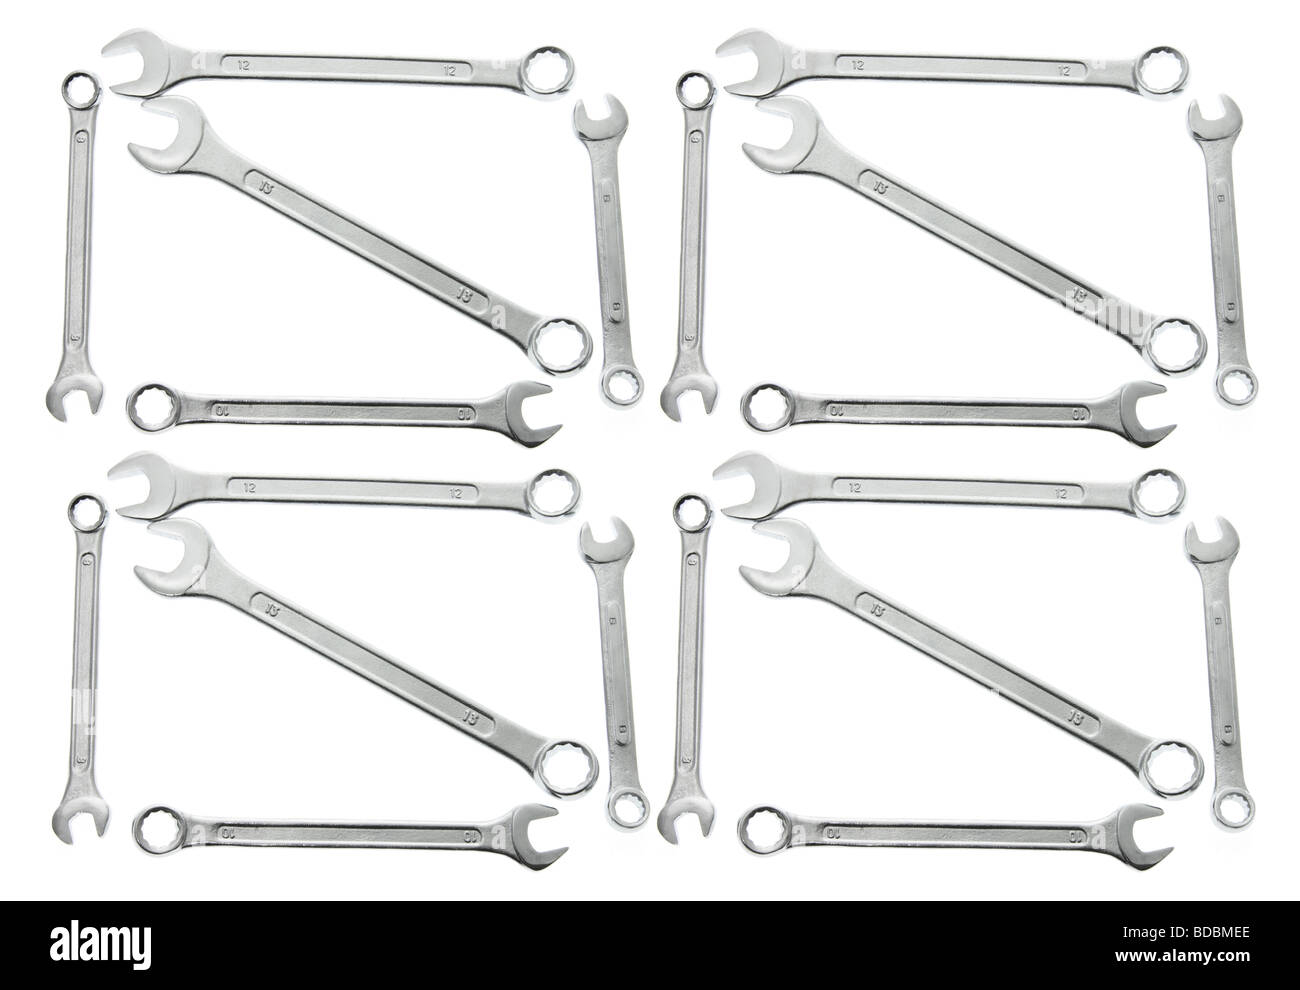 Arrangement of Spanners - Stock Image